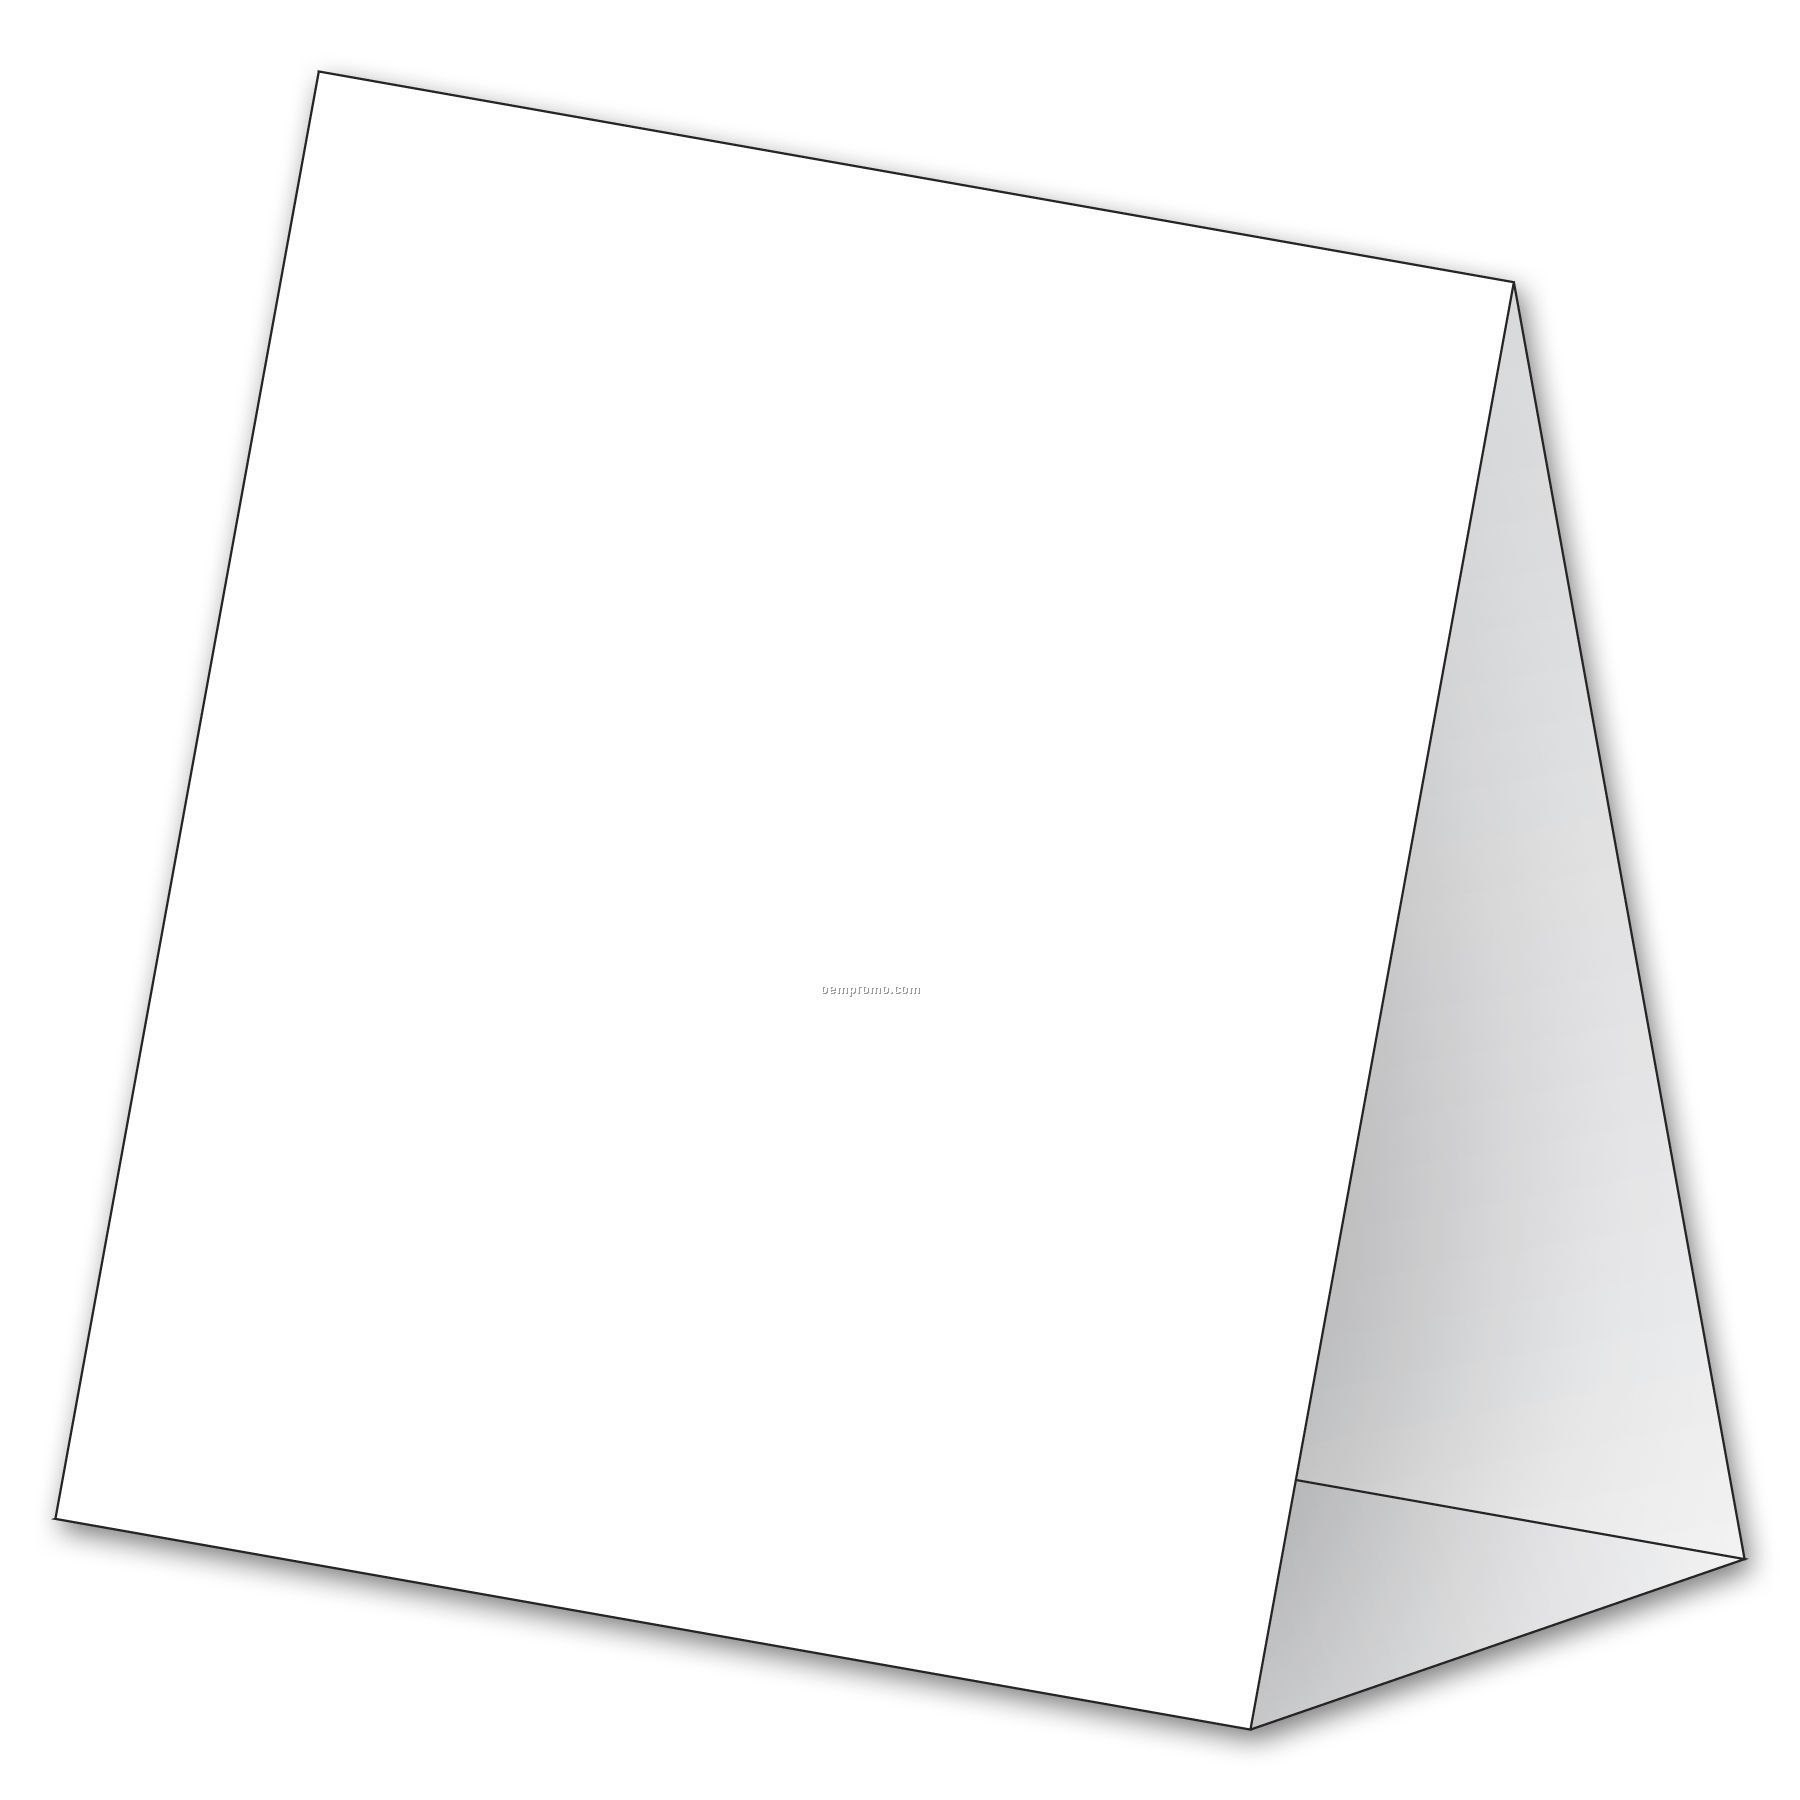 Blank Place Card Template Free Tent Table Cards Networkuk Net Regarding Free Tent Card Template Downloads